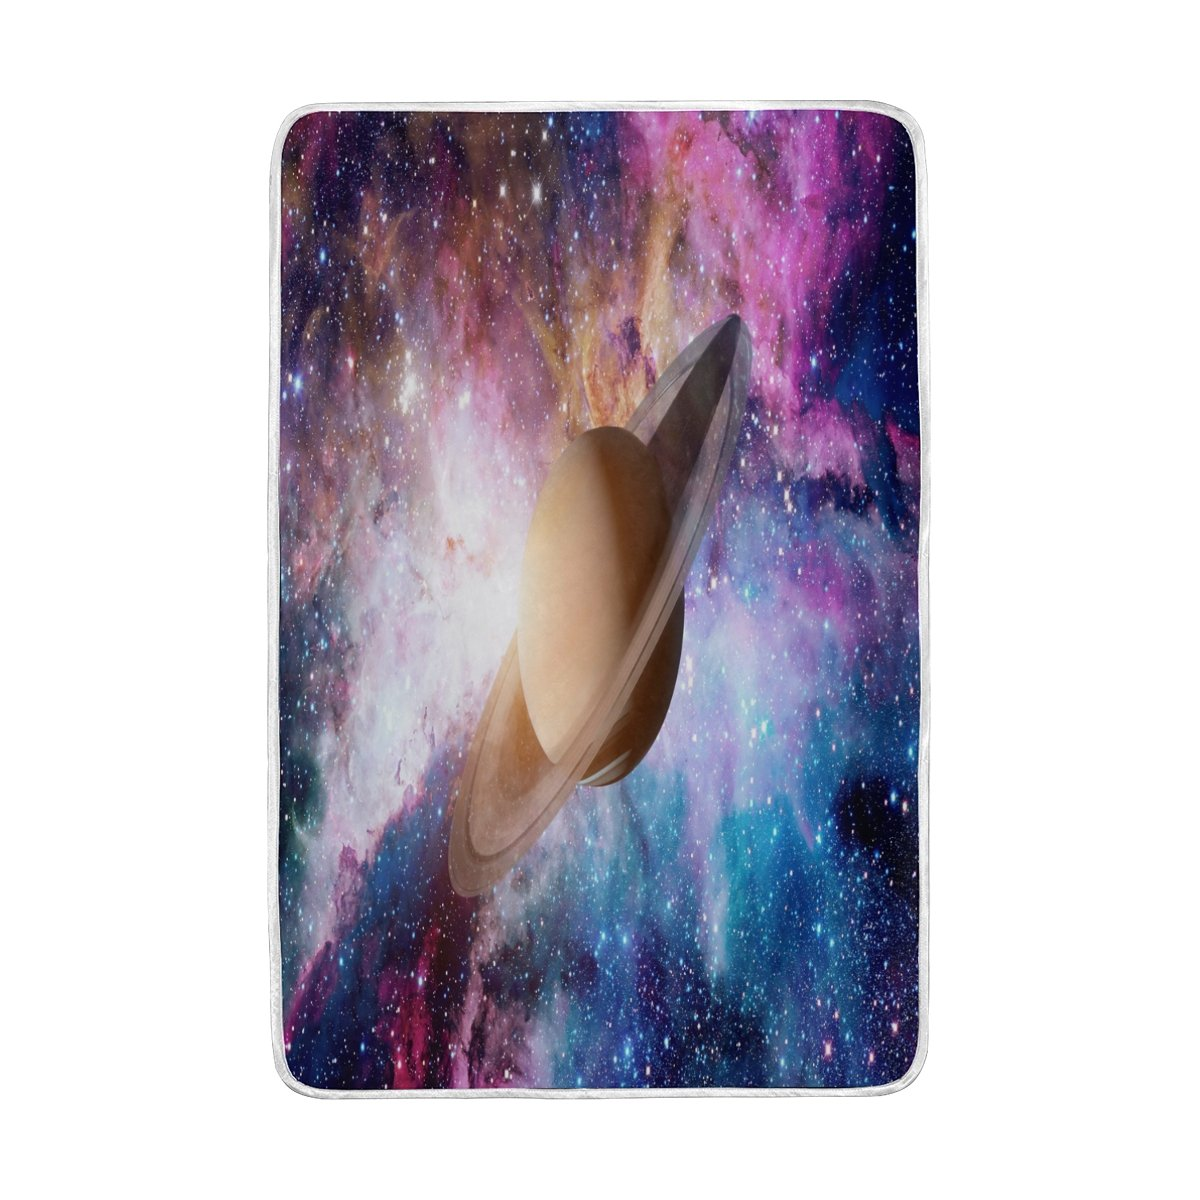 ALAZA Home Decor Solar System Galaxy Nebula Soft Warm Blanket for Bed Couch Sofa Lightweight Travelling Camping 90 x 60 Inch Twin Size for Kids Boys Women